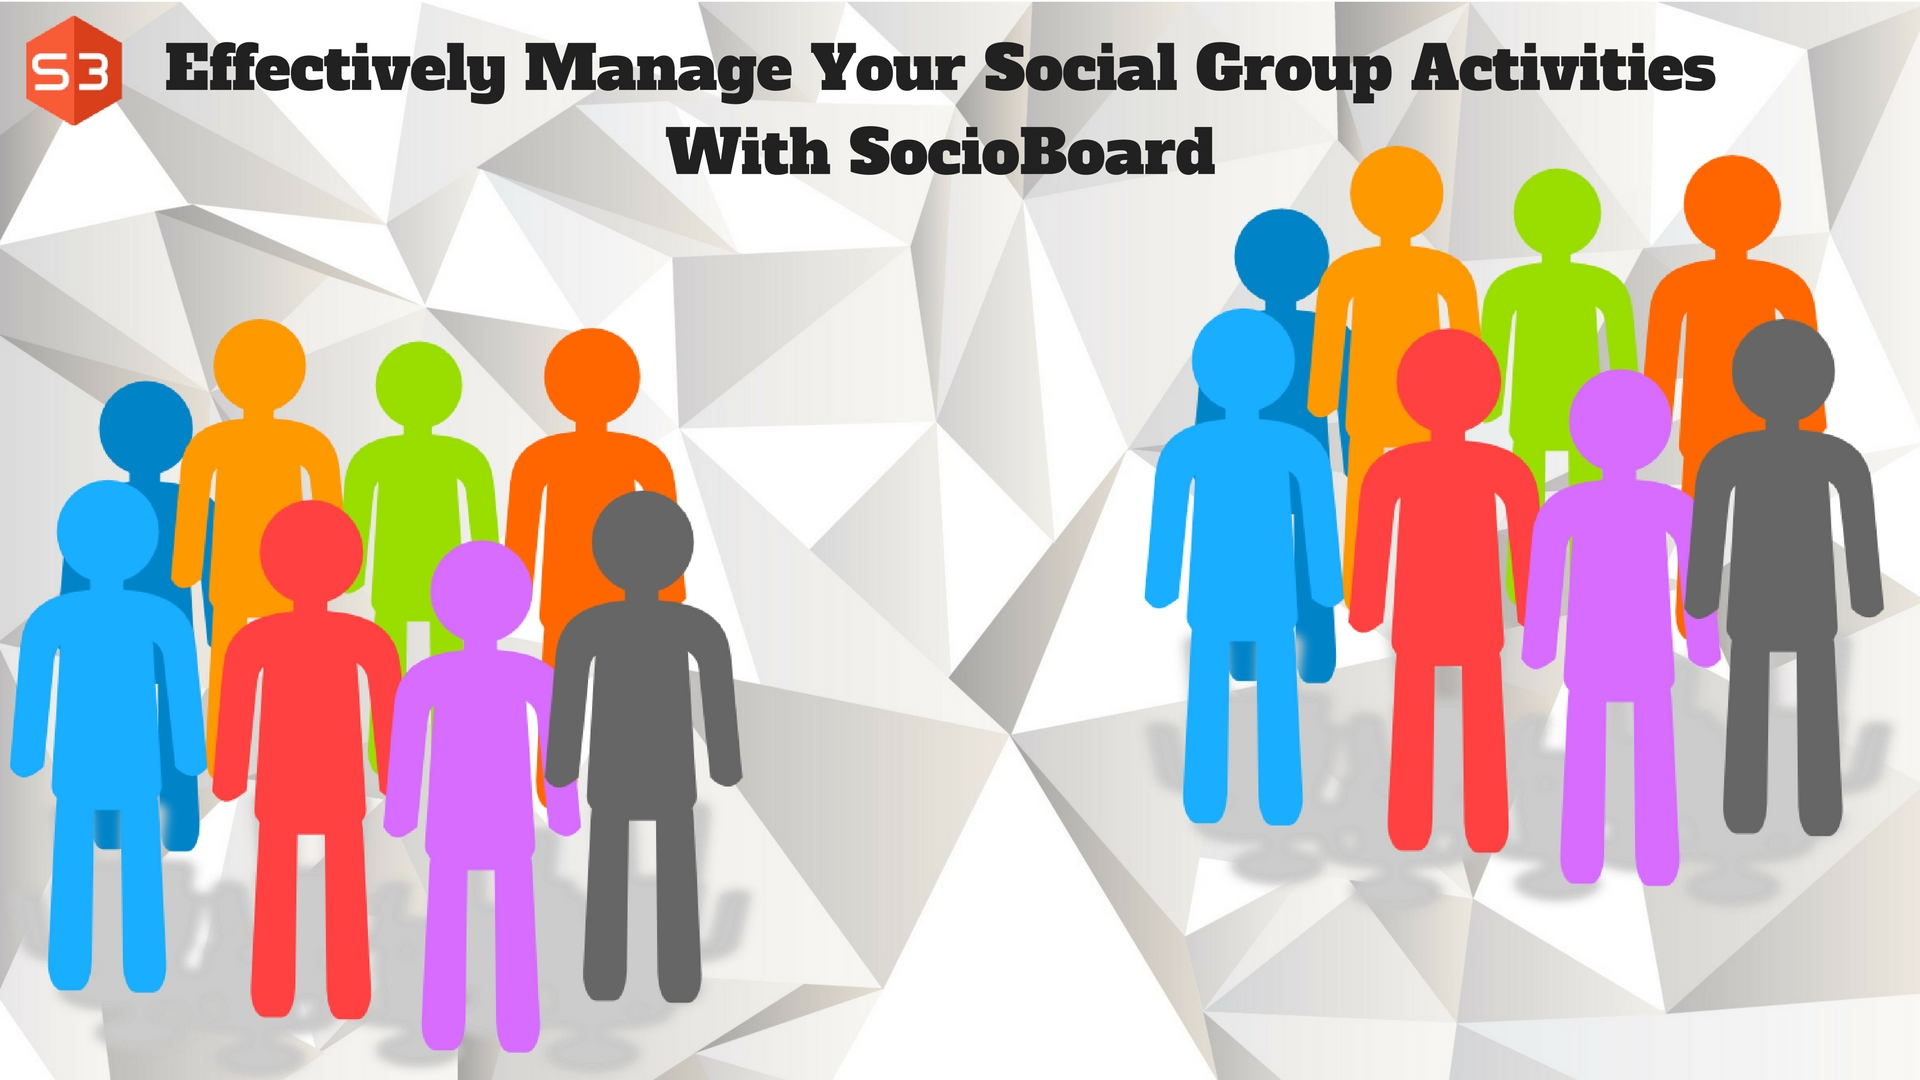 How To Enhance Your Social Group Activities Through SocioBoard?